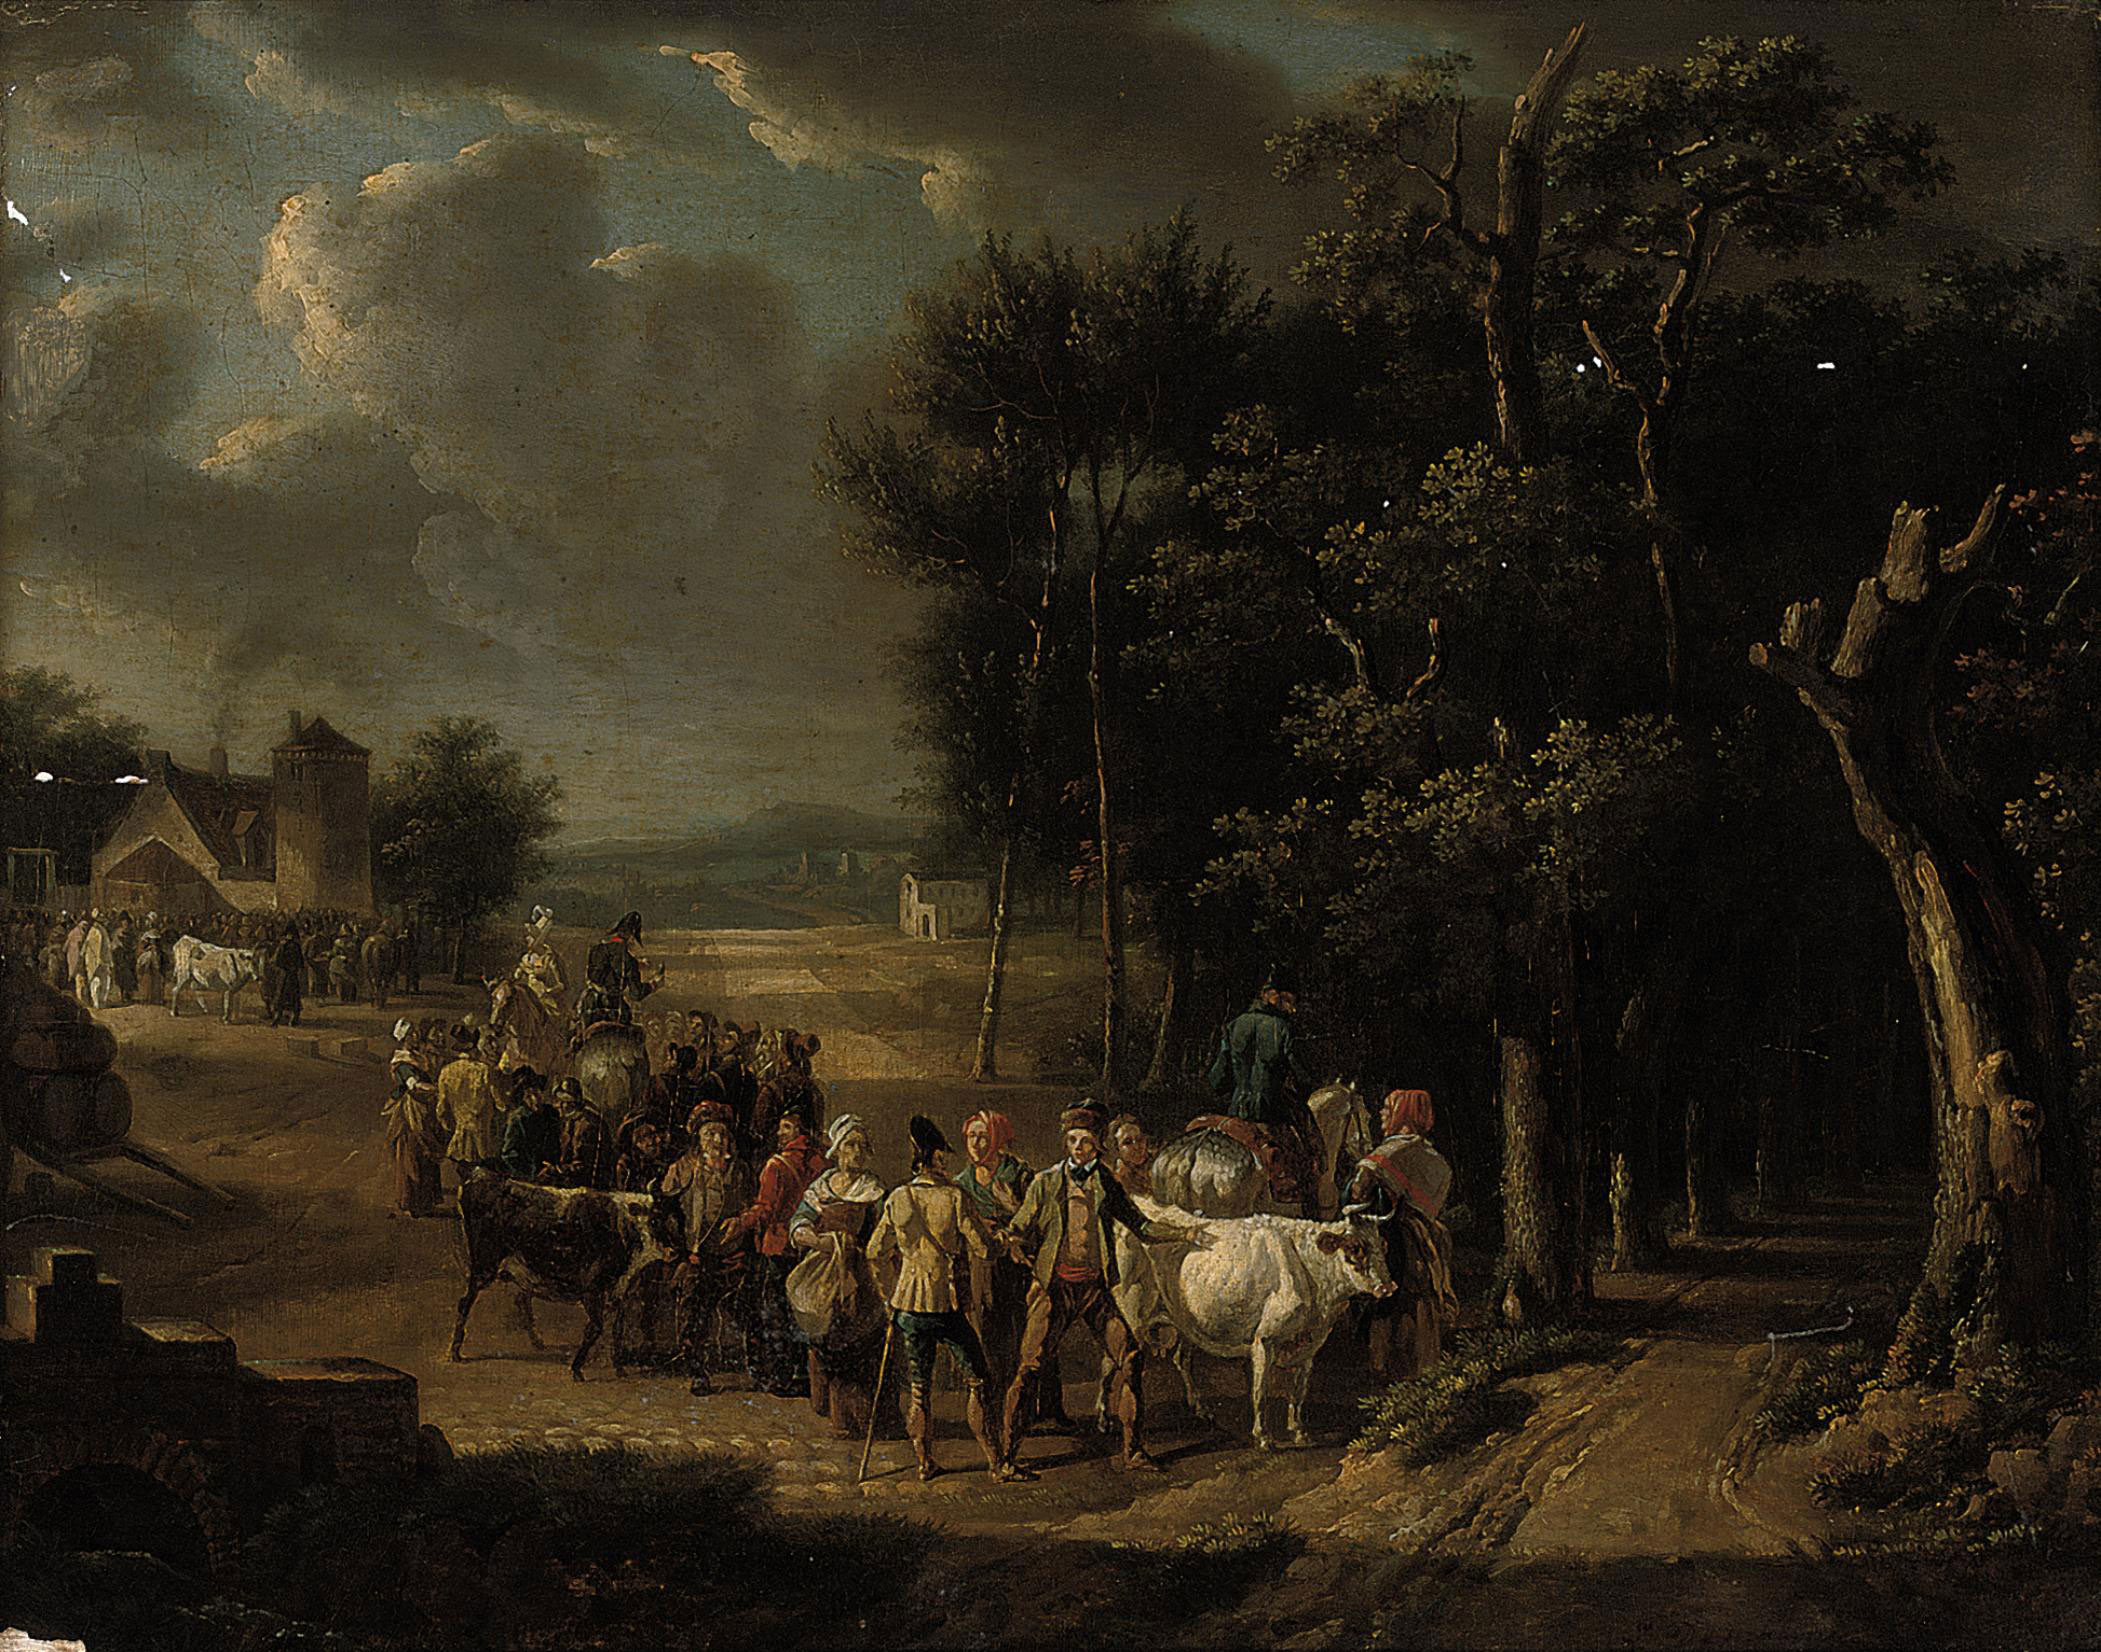 A wooded landscape with officers on horseback, cattle, and figures conversing on a track